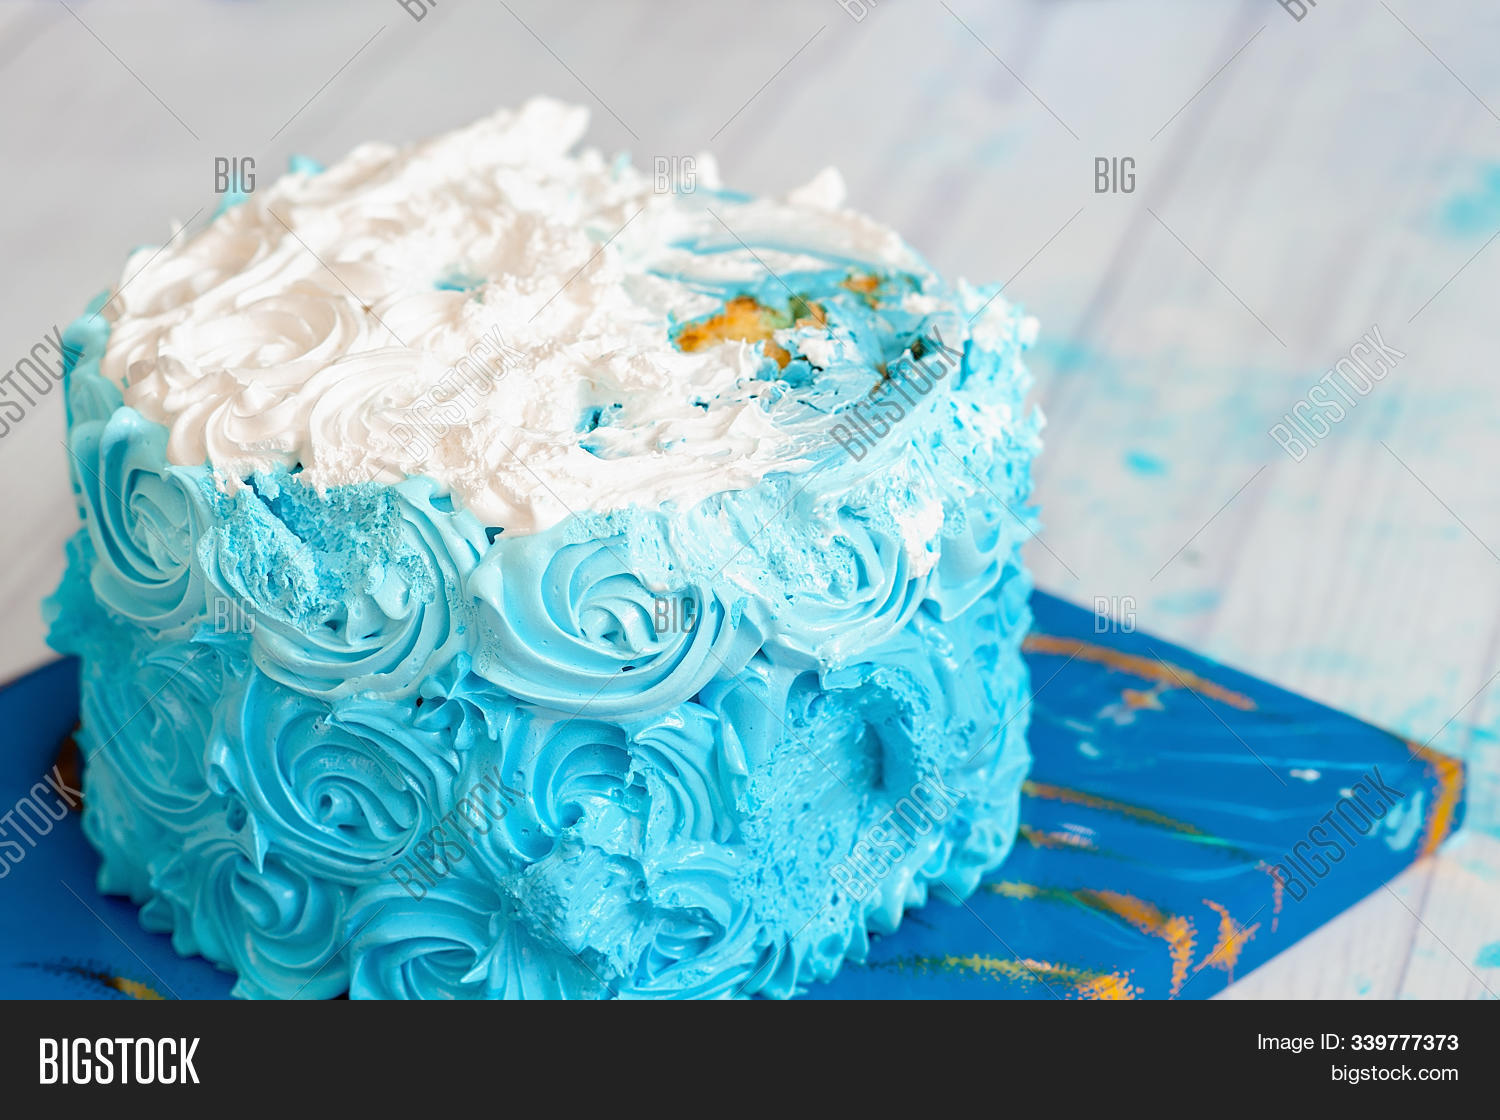 Marvelous Happy First Birthday Image Photo Free Trial Bigstock Funny Birthday Cards Online Elaedamsfinfo